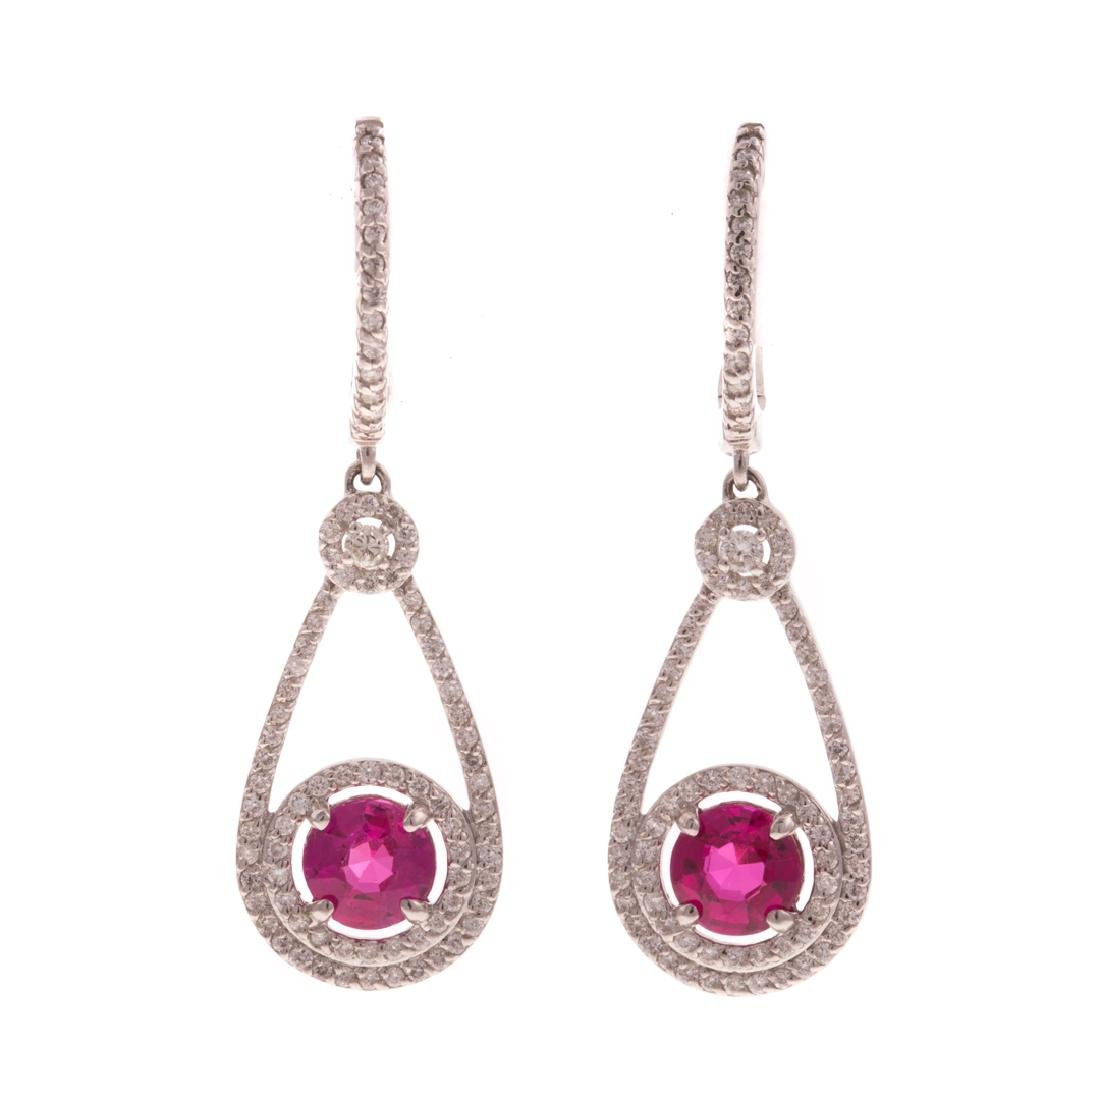 A Pair of Pink Sapphire & Diamond Drop Earrings